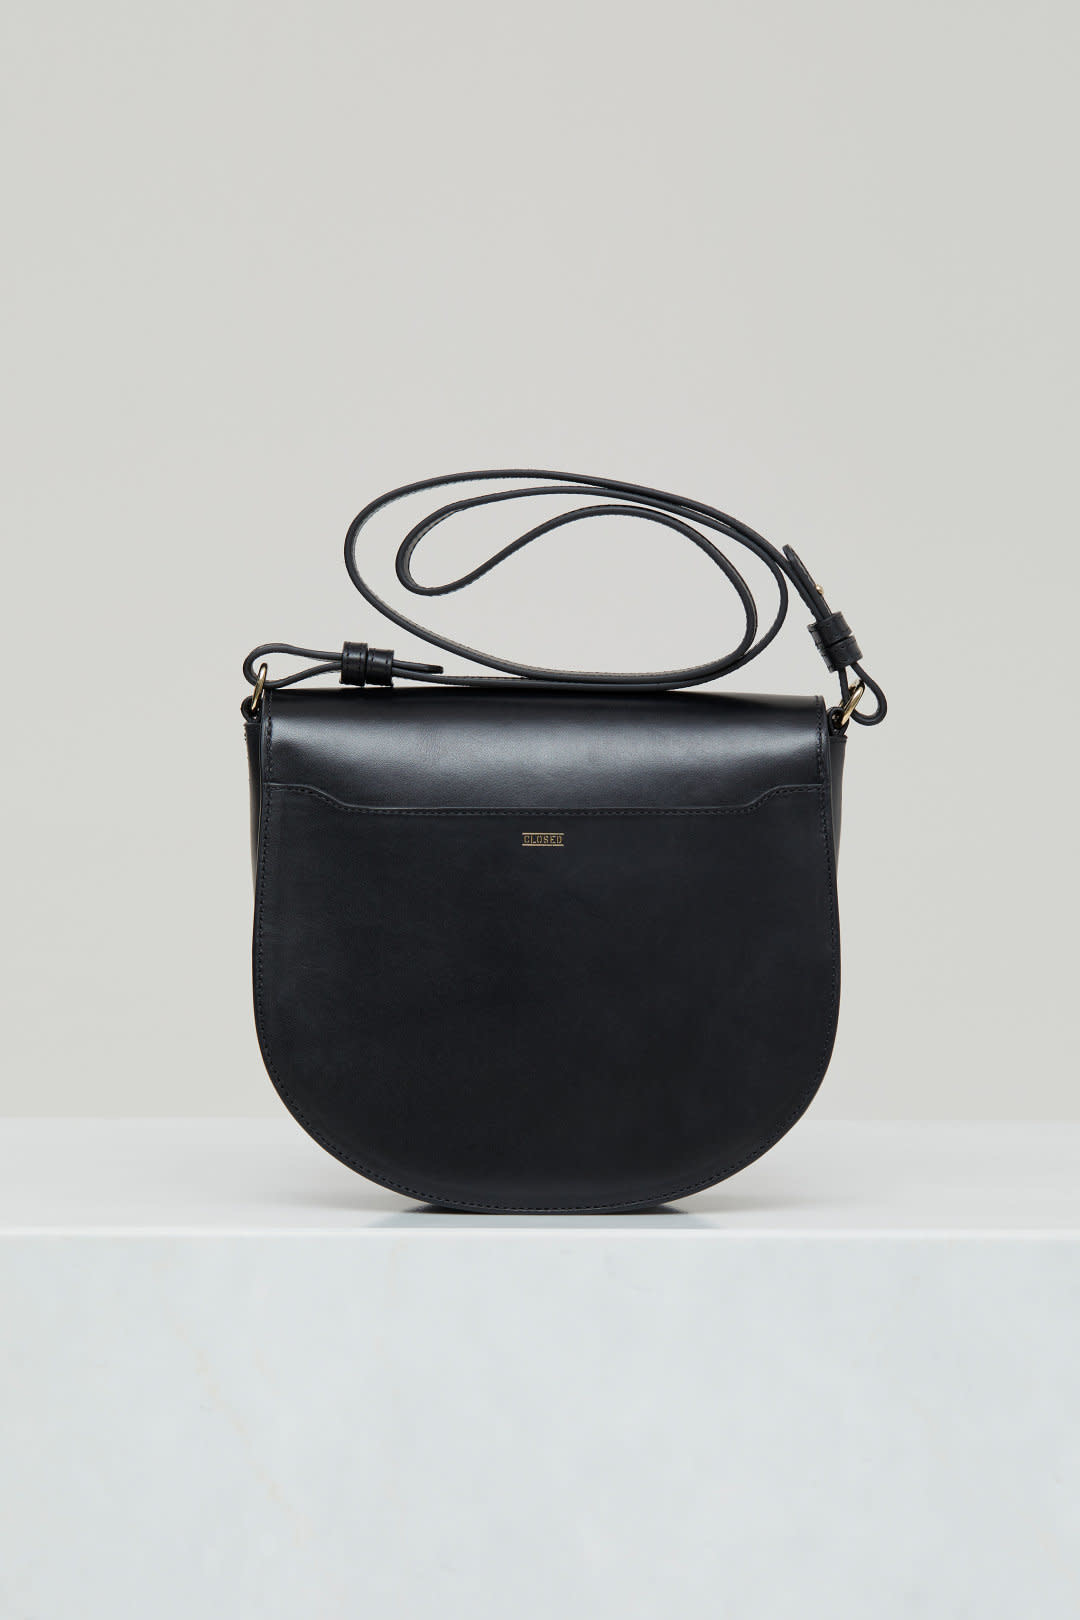 Ally M bag Black leather incl strap-3